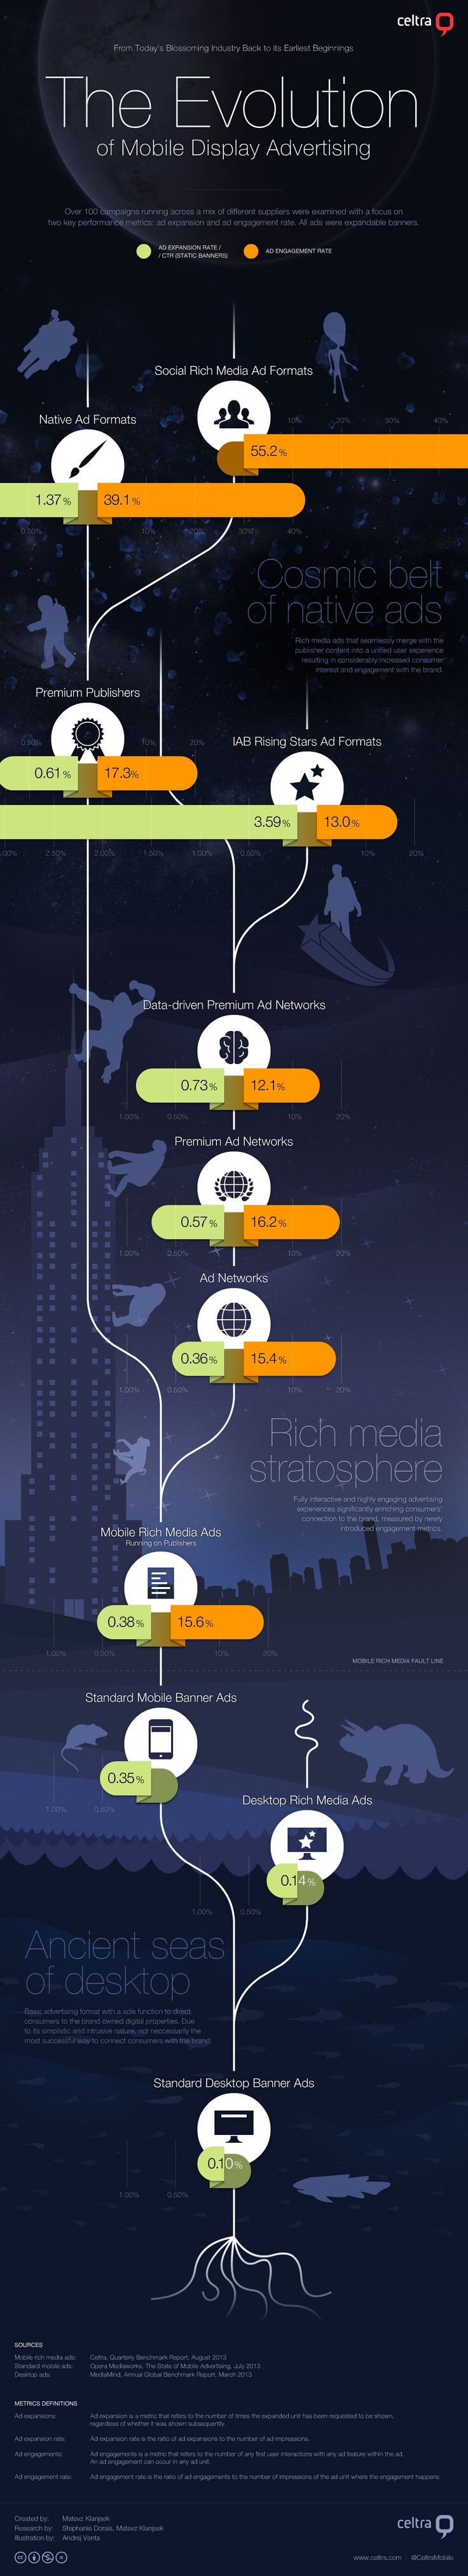 The Evolution of Mobile Display Advertising. #infoporn